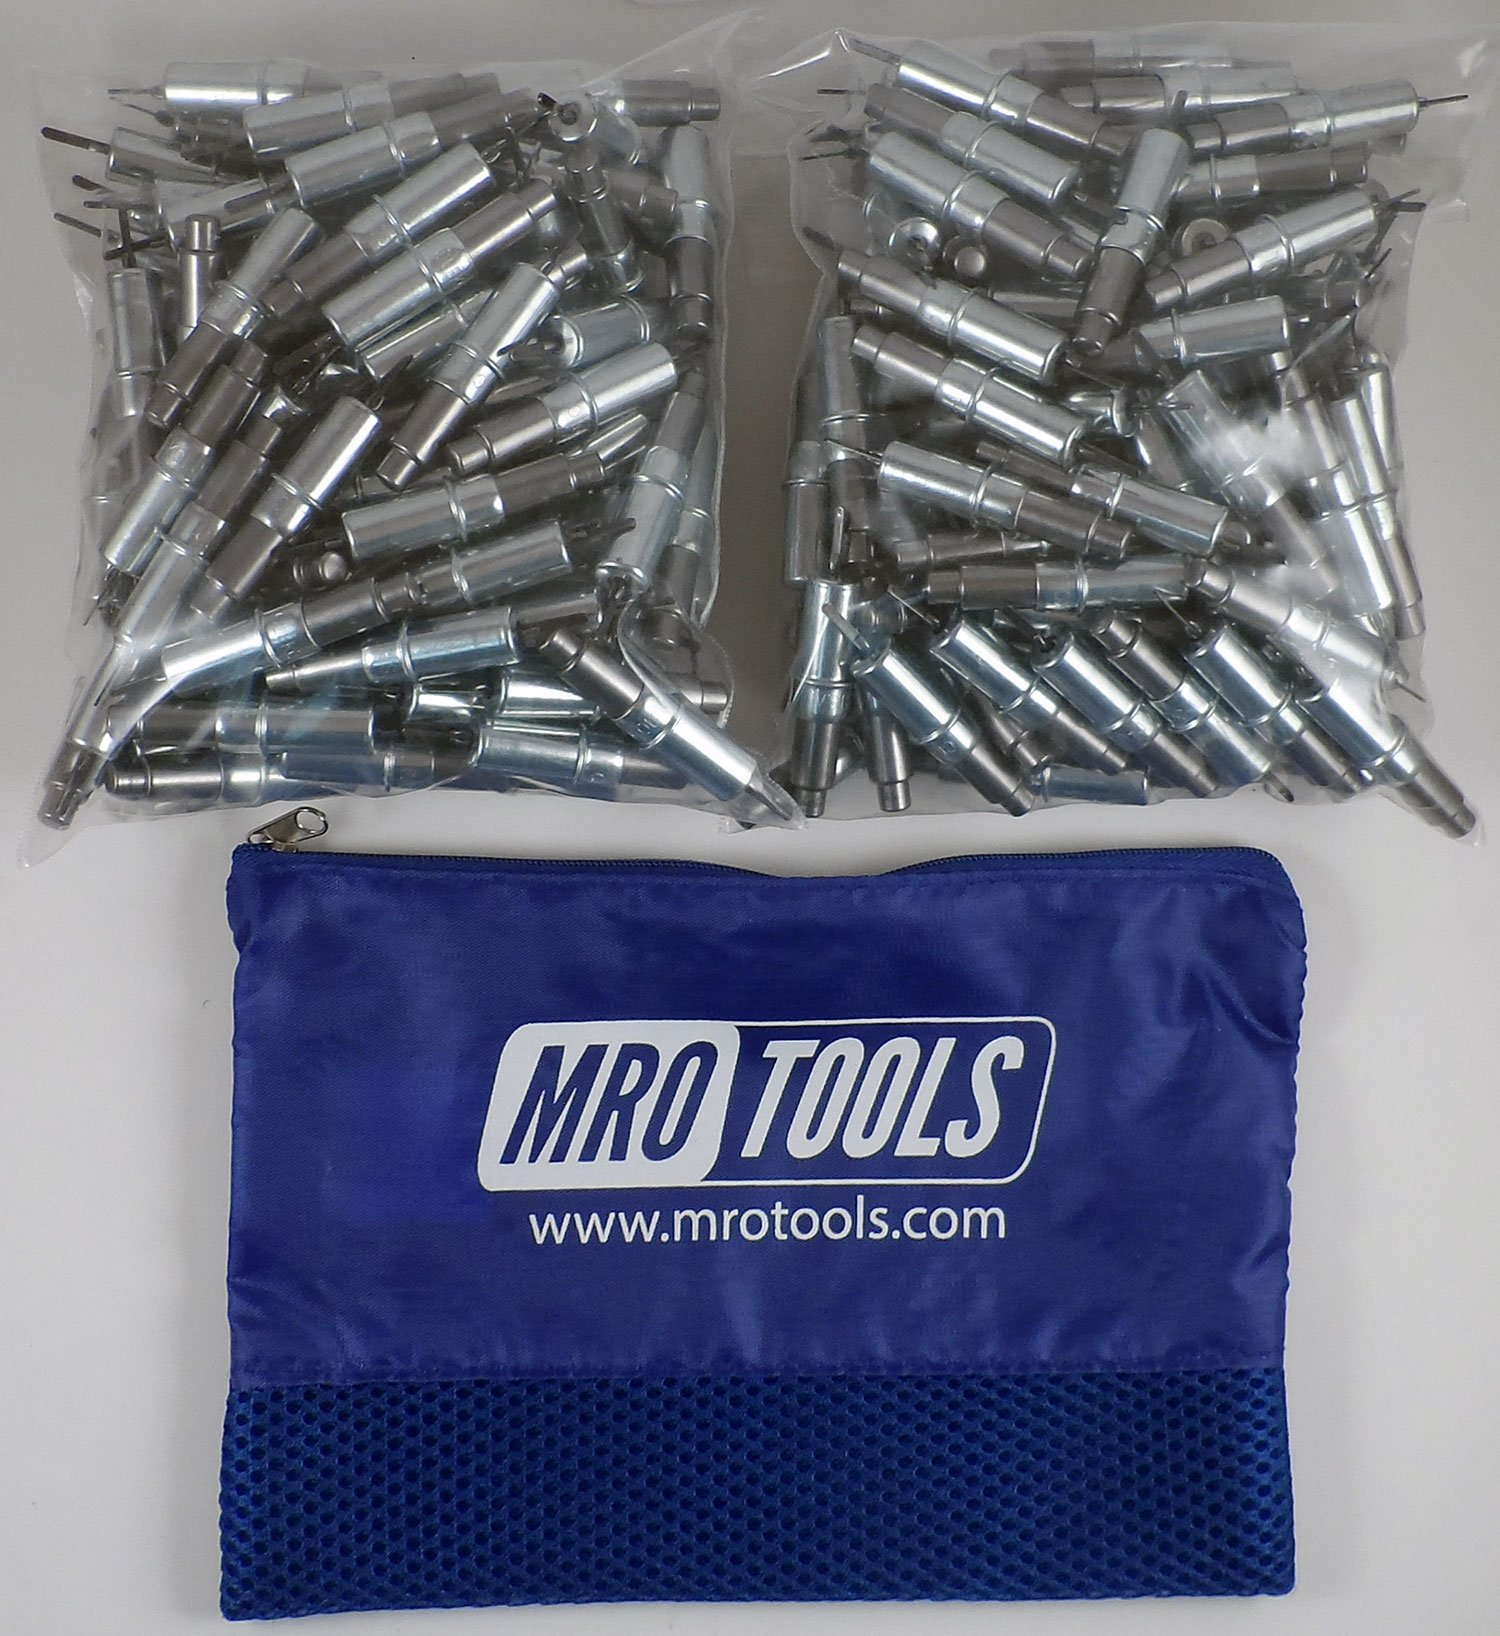 300 3/32 Heavy Duty Cleco Sheet Metal Fasteners w/ Mesh Carry Bag (KHD2S300-3/32) by MRO Tools Cleco Fasteners